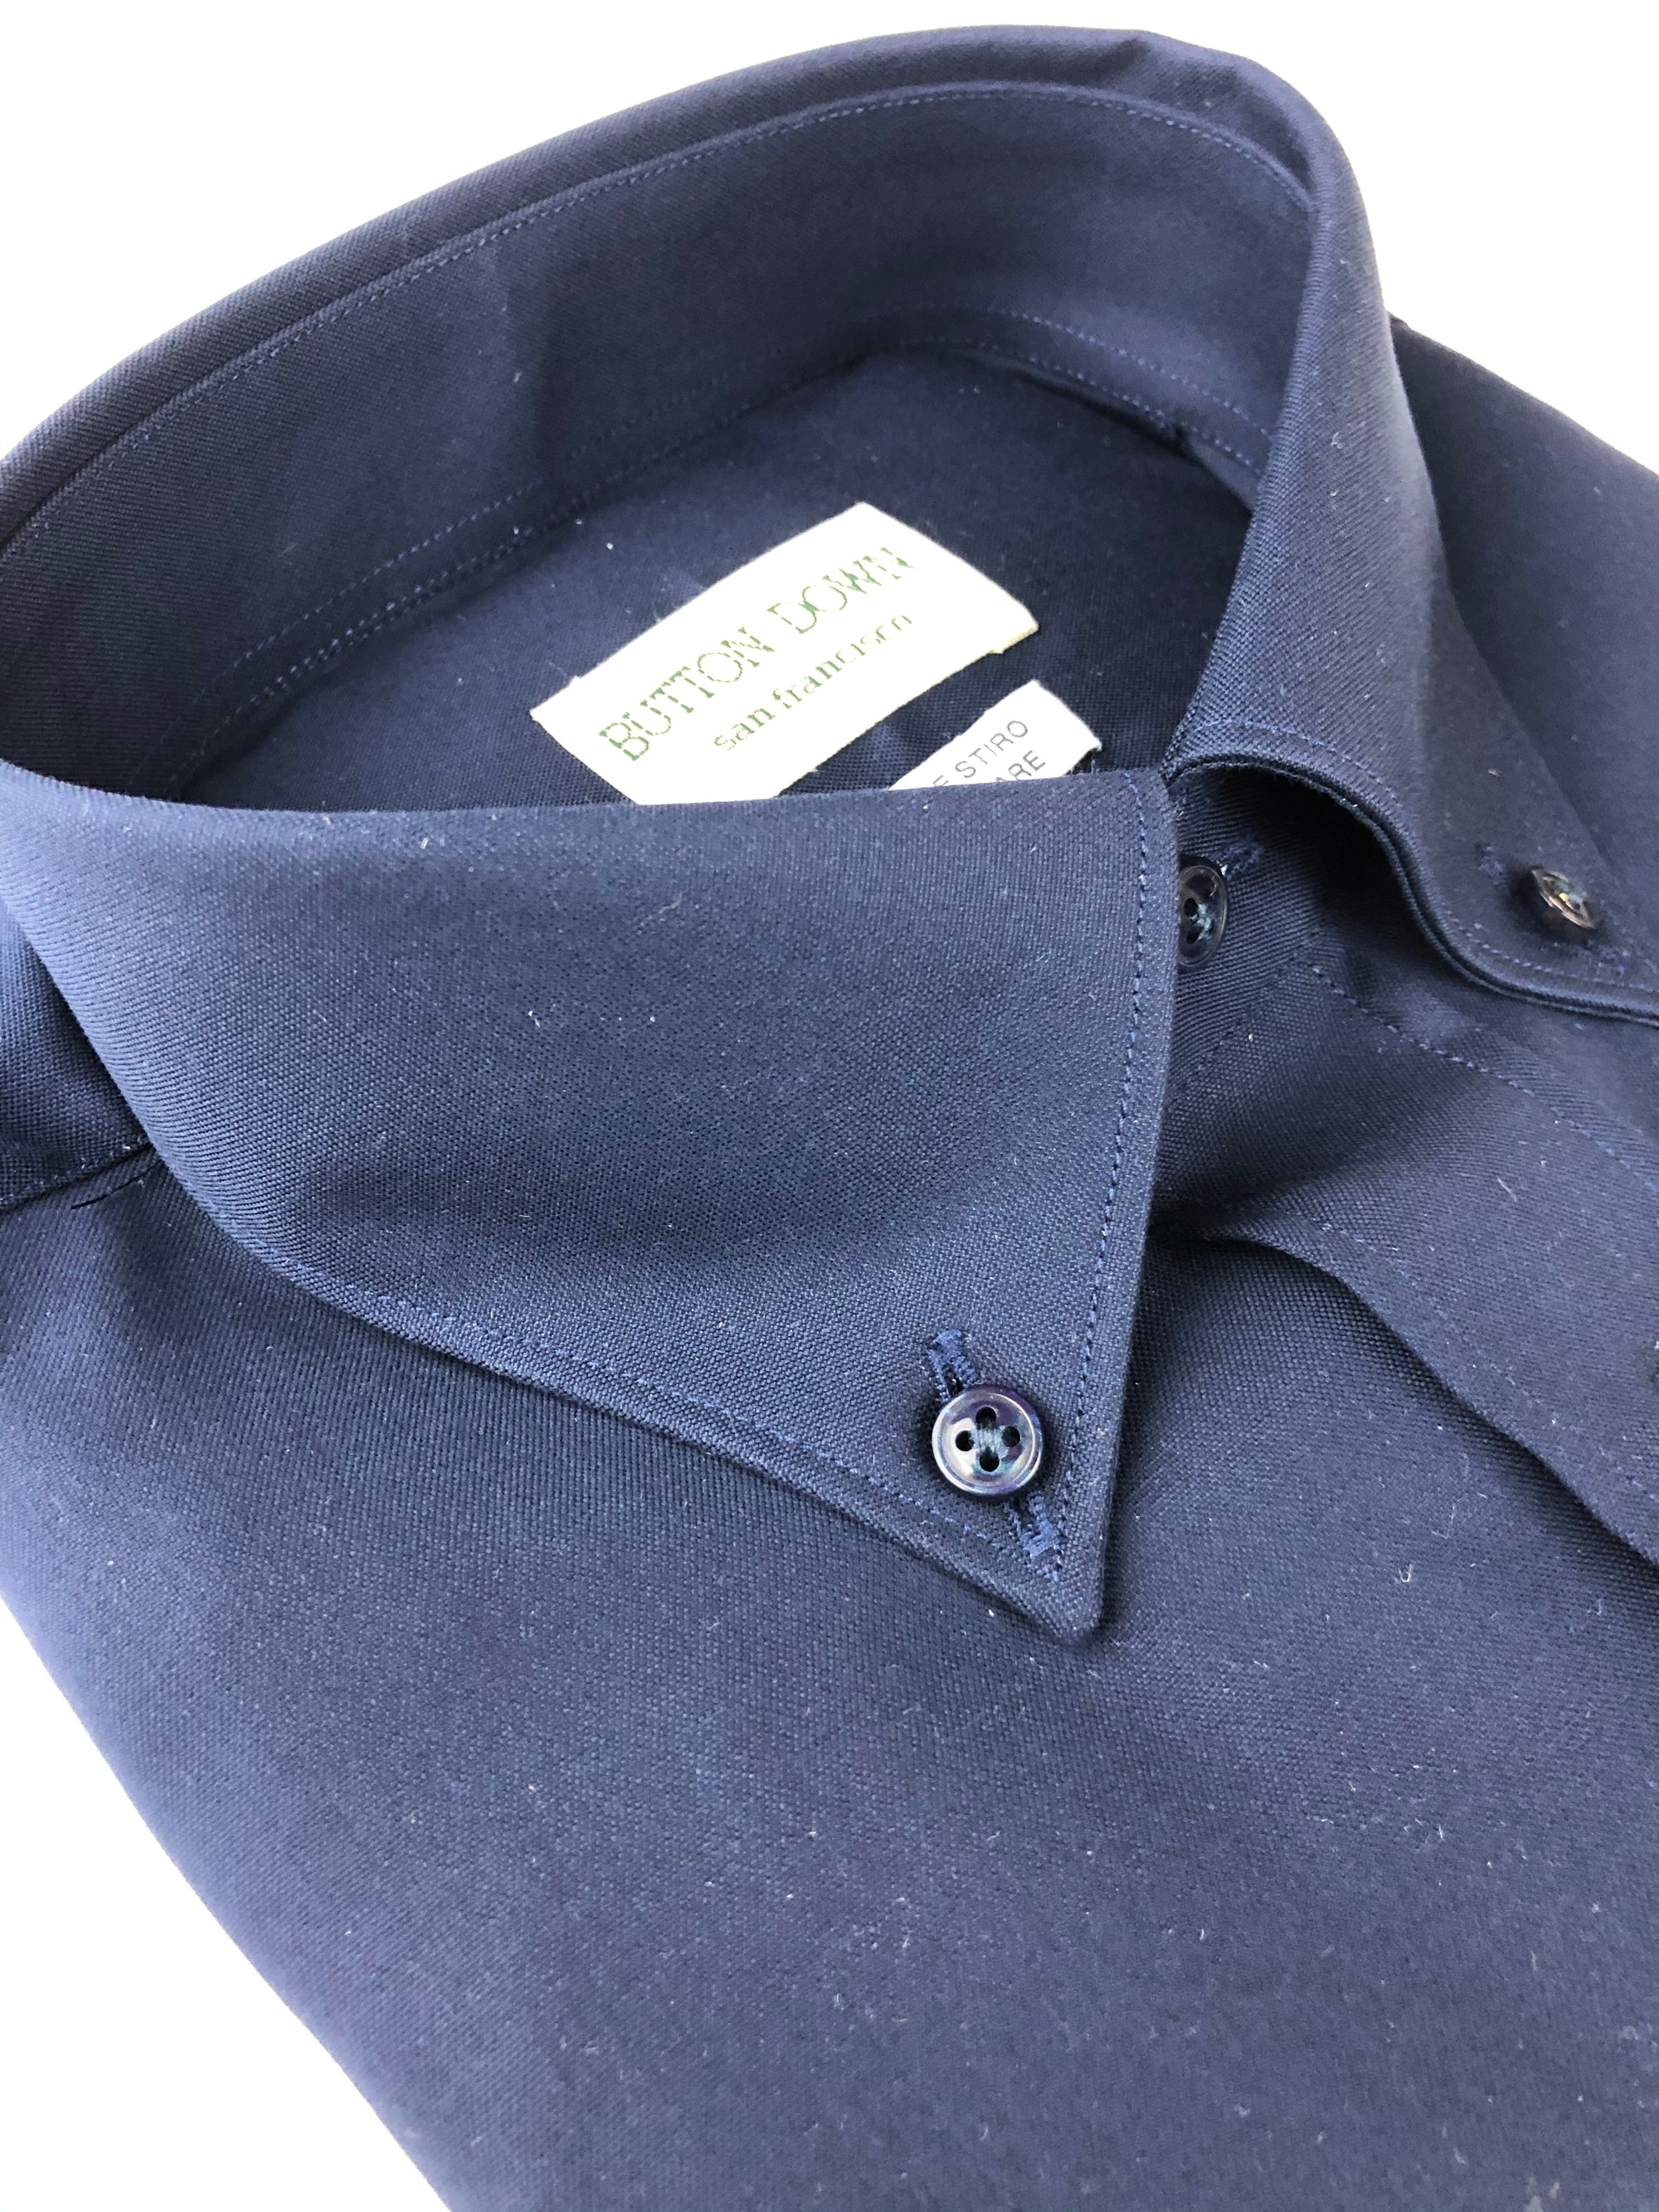 BUTTON DOWN SOLID NAVY MEN'S SHIRT